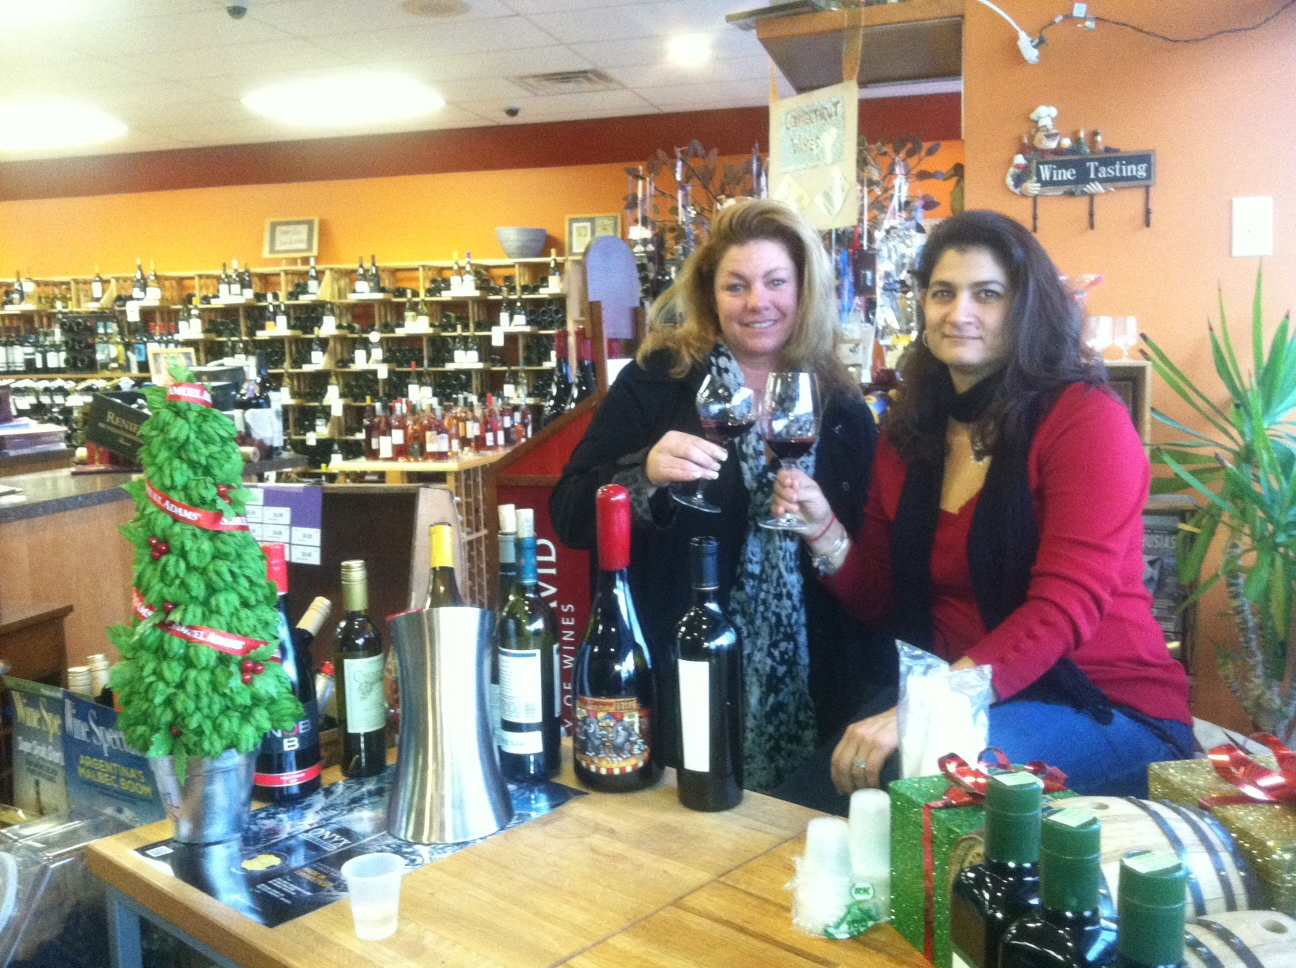 AROUND TOWN: NEWS POURS RAPTURE AT VINES